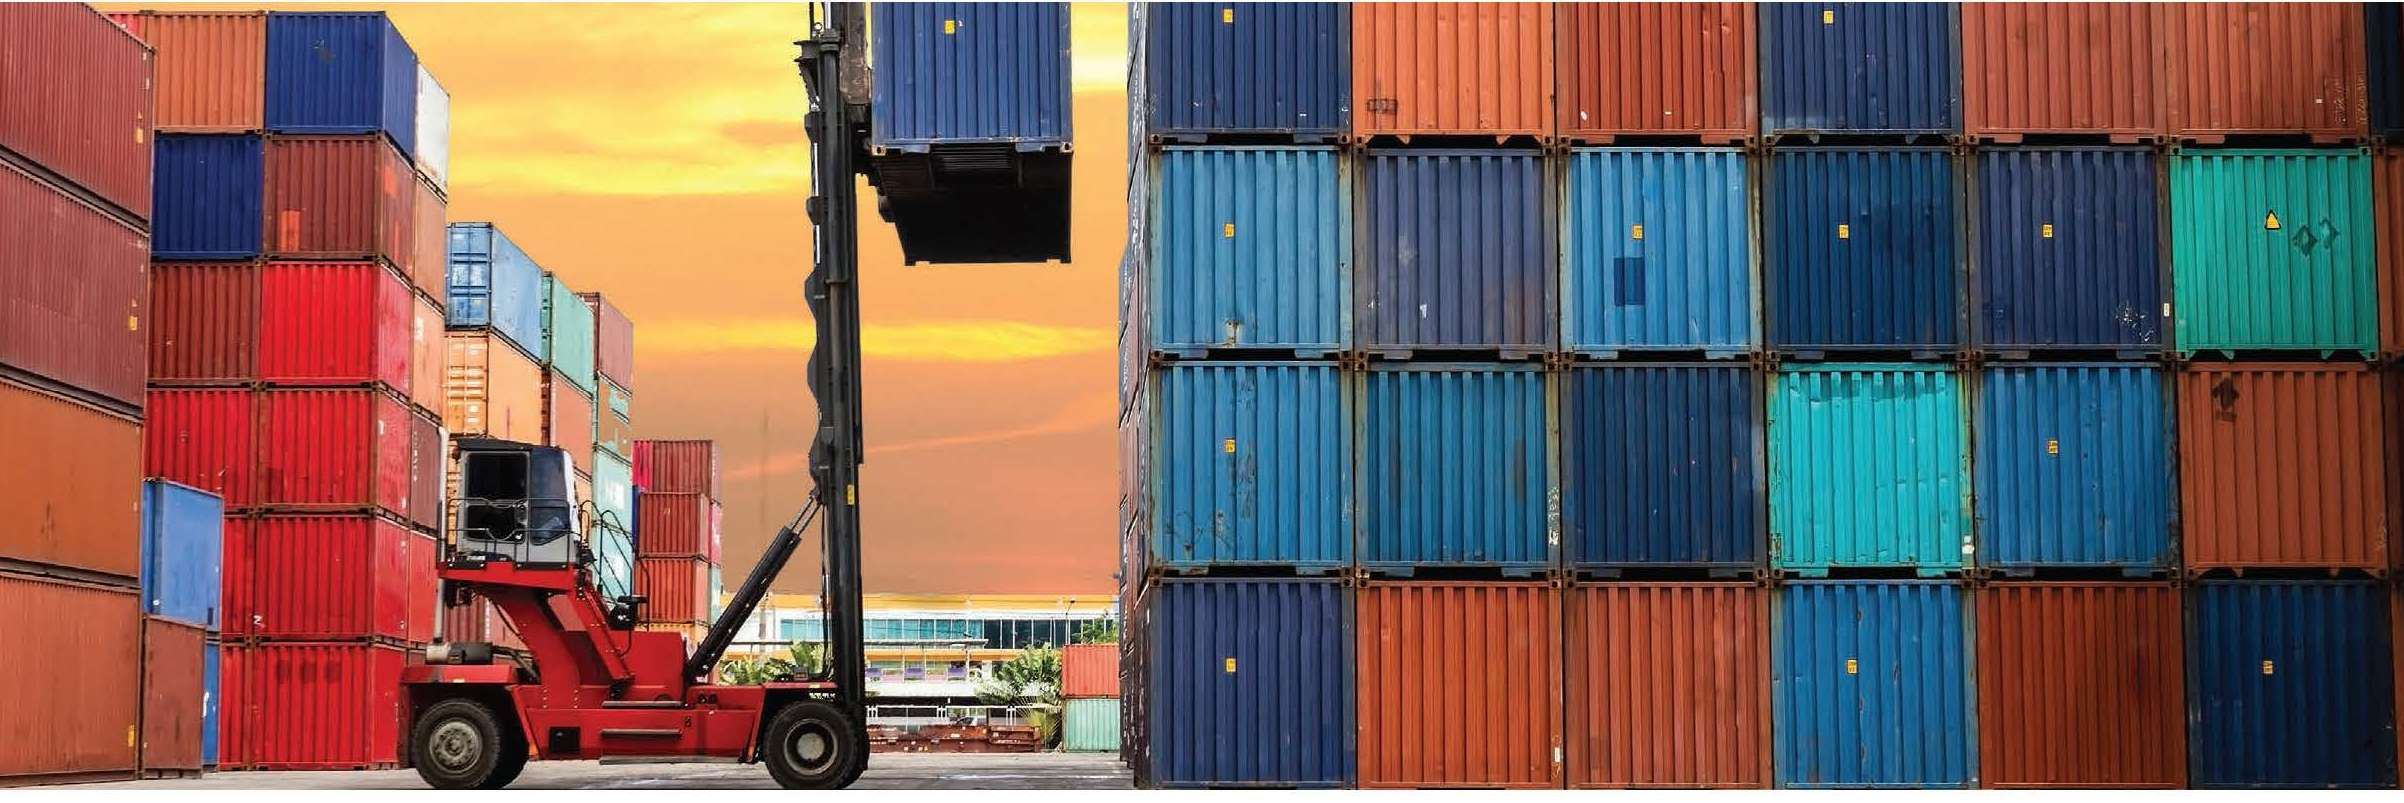 Forklift and containers image